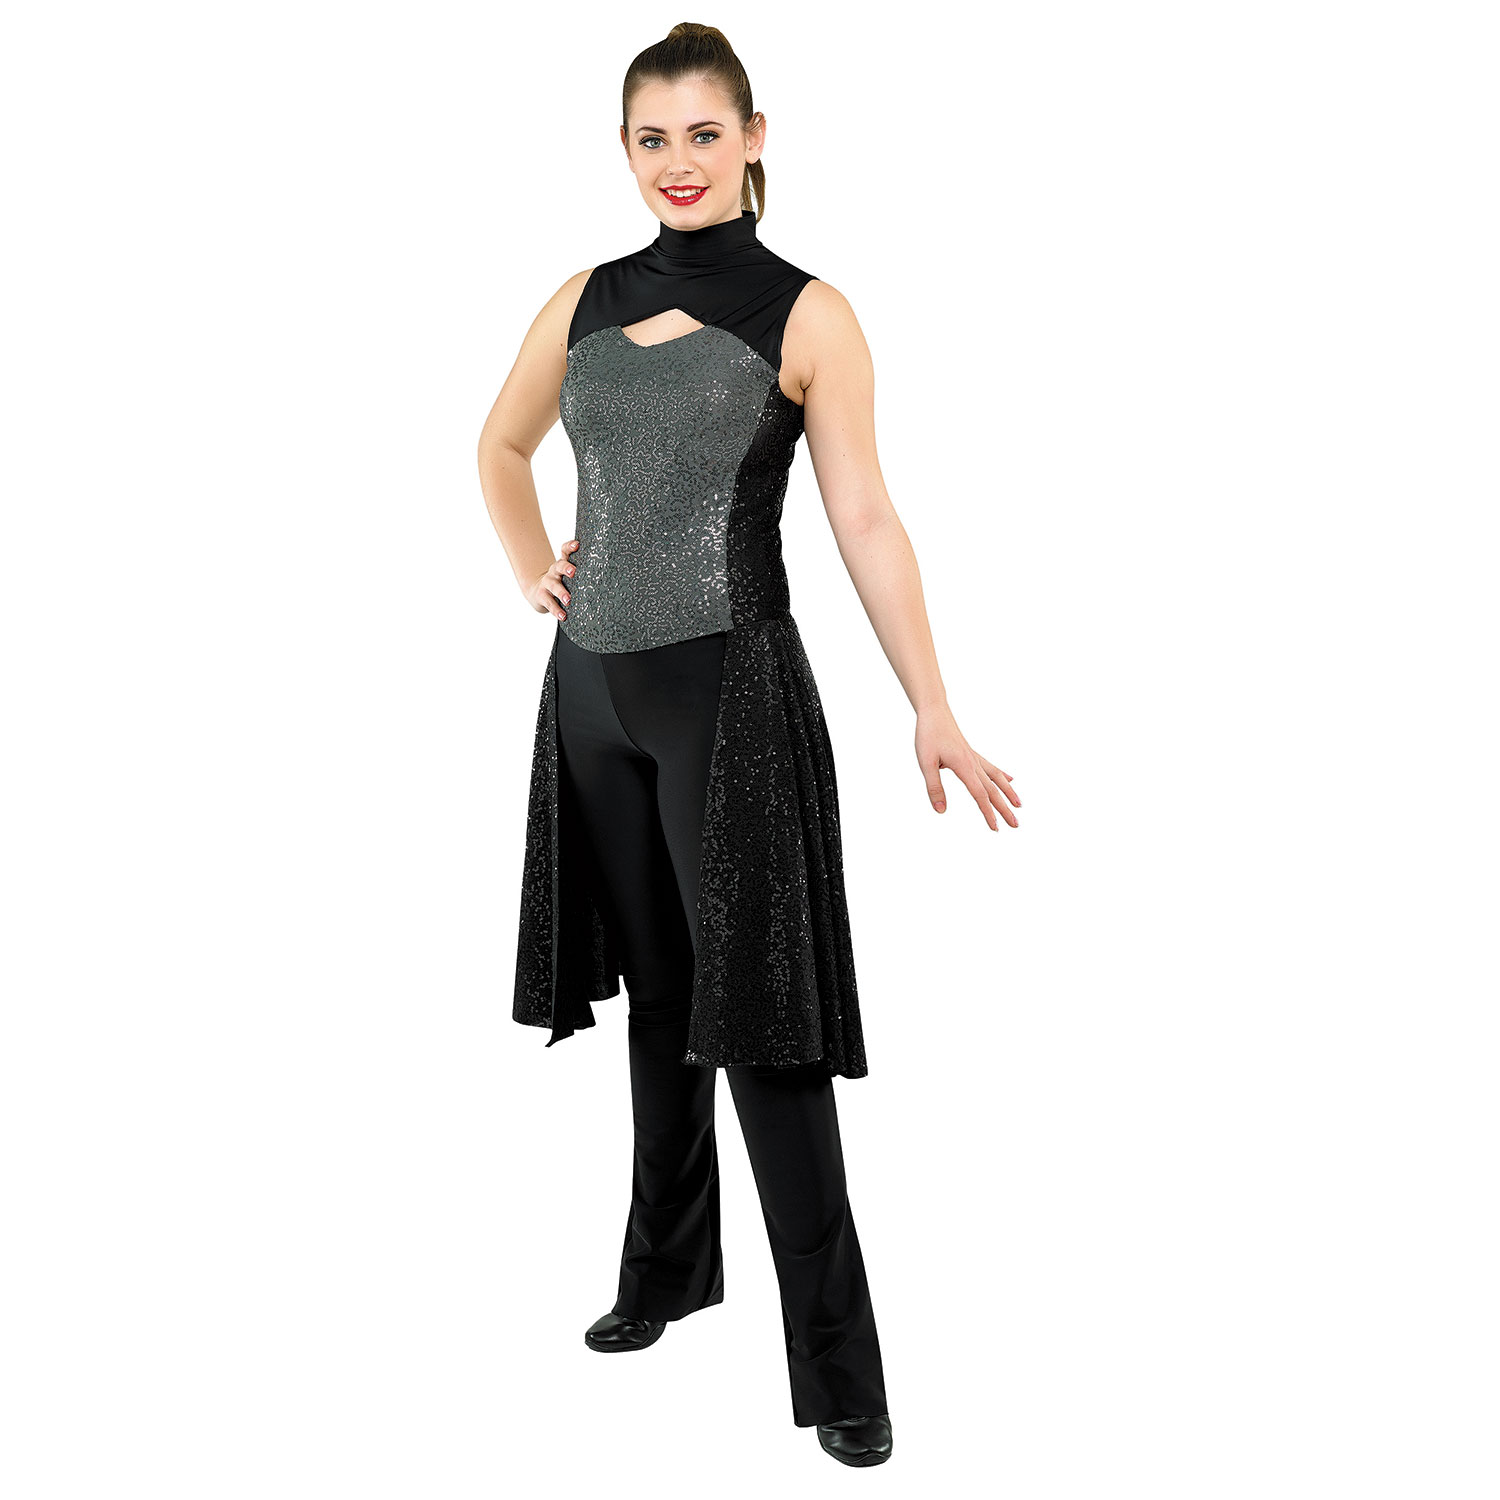 Guard Uniforms: Style 5031